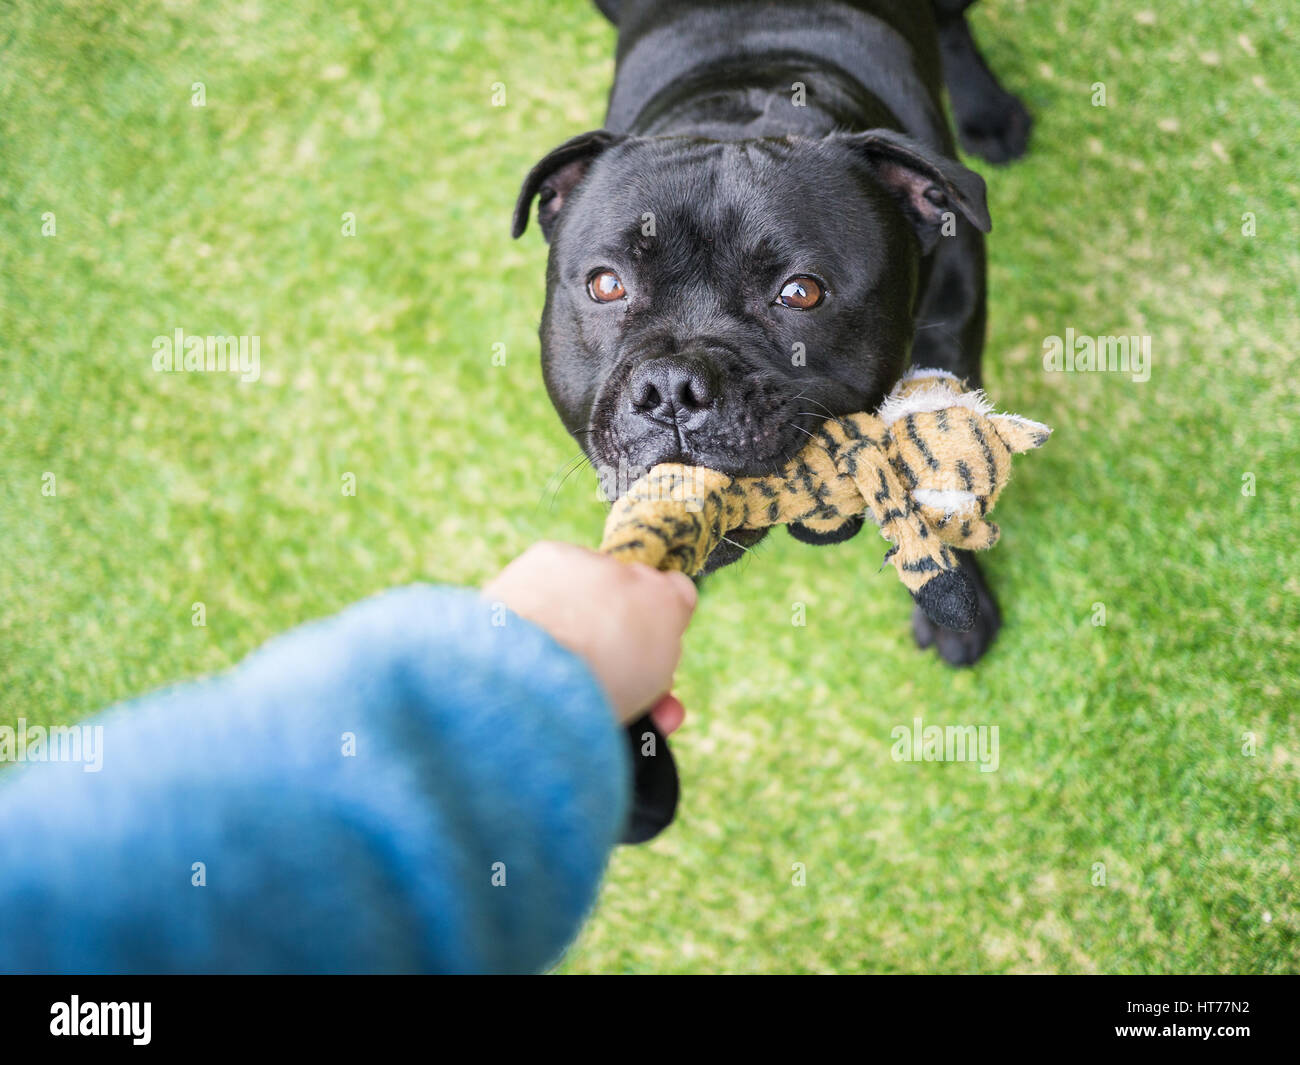 A black staffordshire bull terrier dog playing tug, holding a soft toy in his mouth, pulling with a human. The arm - Stock Image